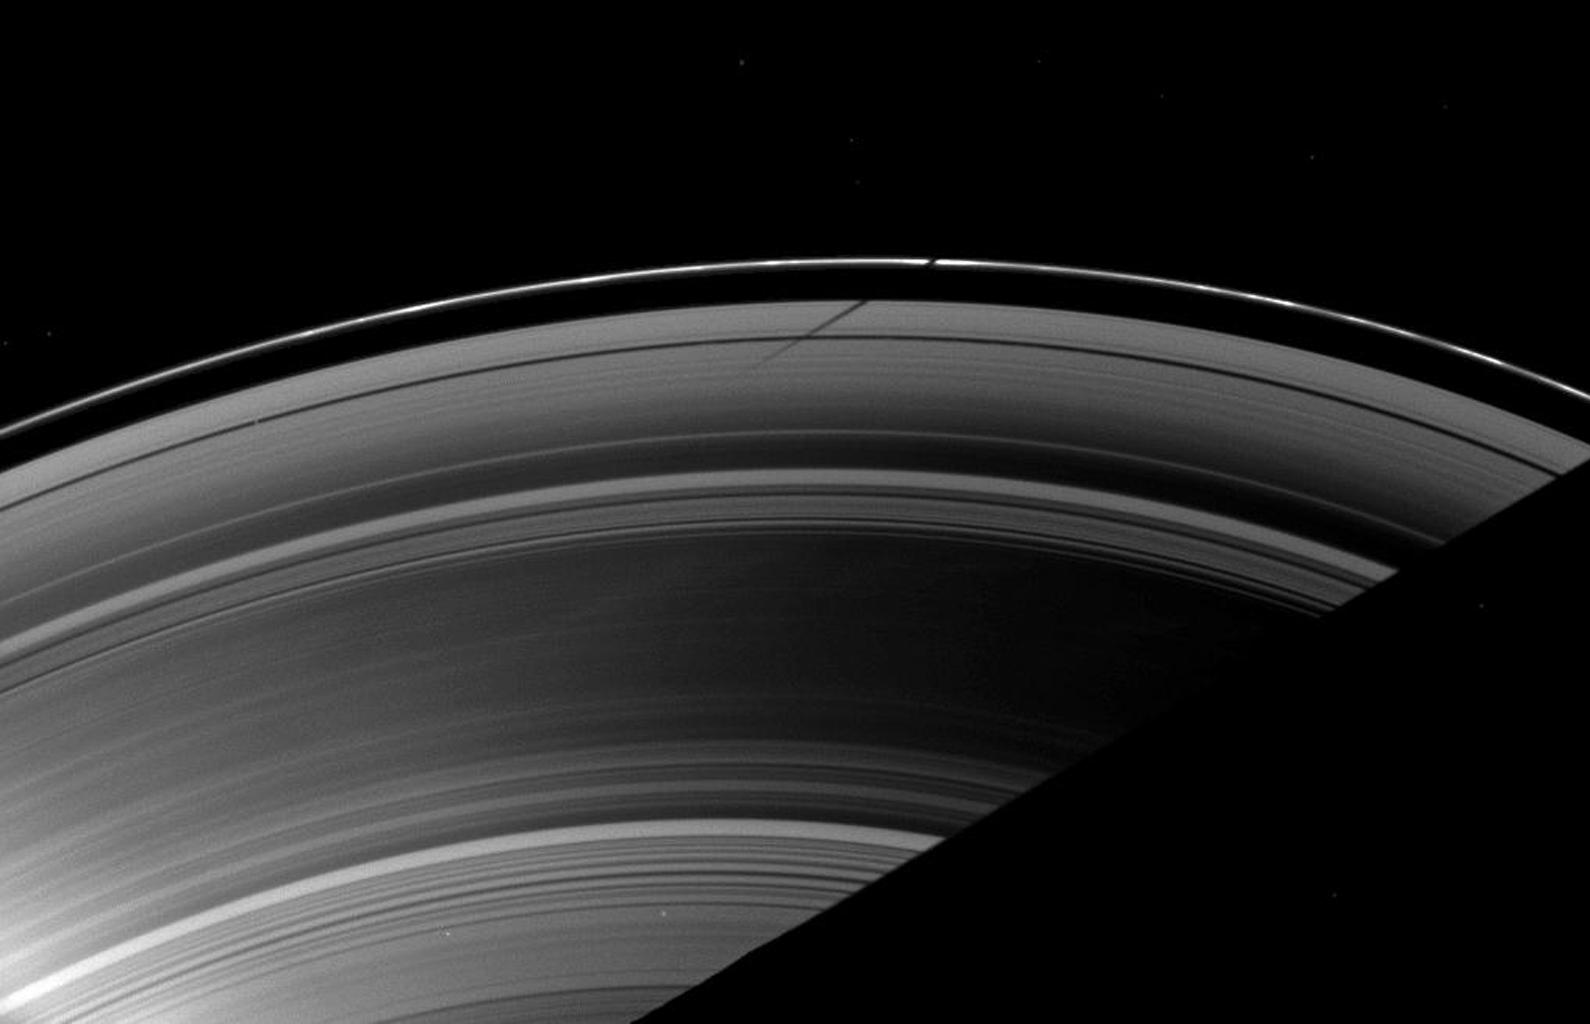 The shadow of the moon Mimas strikes the F ring at a different angle than the angle at which it is cast on the A ring, illustrating differences in the vertical heights of the rings in this image taken as Saturn approaches its August 2009 equinox.